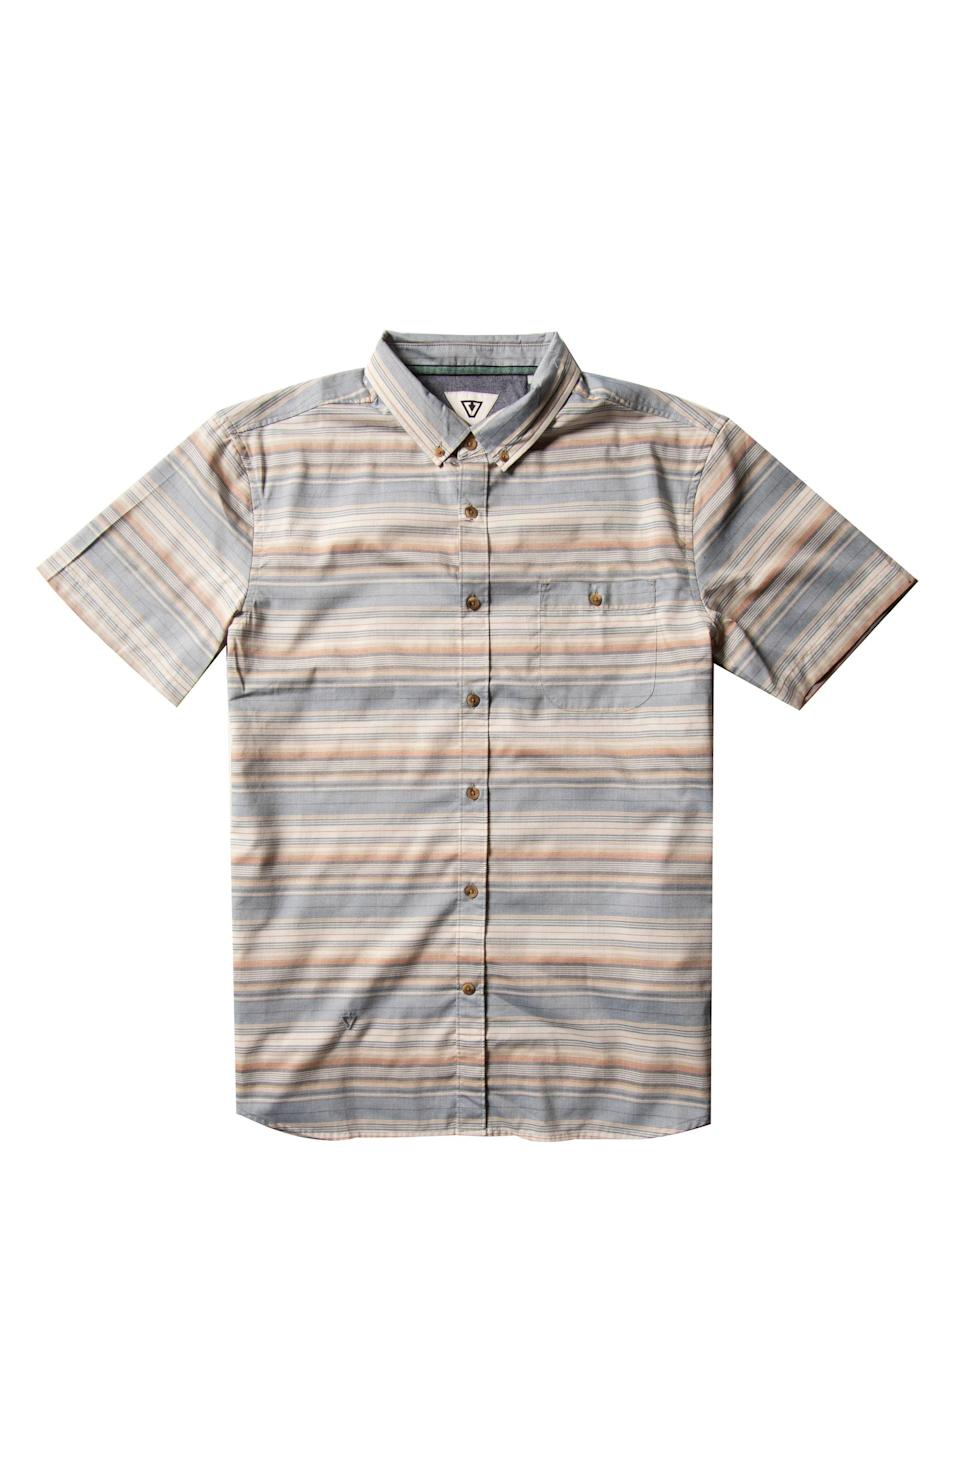 """<p><strong>VISSLA</strong></p><p>nordstrom.com</p><p><a href=""""https://go.redirectingat.com?id=74968X1596630&url=https%3A%2F%2Fwww.nordstrom.com%2Fs%2Fvissla-sprays-slim-fit-stripe-short-sleeve-button-down-shirt%2F5787432&sref=https%3A%2F%2Fwww.esquire.com%2Fstyle%2Fmens-fashion%2Fg37002225%2Fnordstrom-anniversary-sale-mens-fashion-deals-2021%2F"""" rel=""""nofollow noopener"""" target=""""_blank"""" data-ylk=""""slk:Shop Now"""" class=""""link rapid-noclick-resp"""">Shop Now</a></p><p><strong>Sale: $34.99</strong></p><p><strong>After Sale: $59.95</strong></p><p>A sun-faded striped shirt should you have an IRL event on the horizon. </p>"""